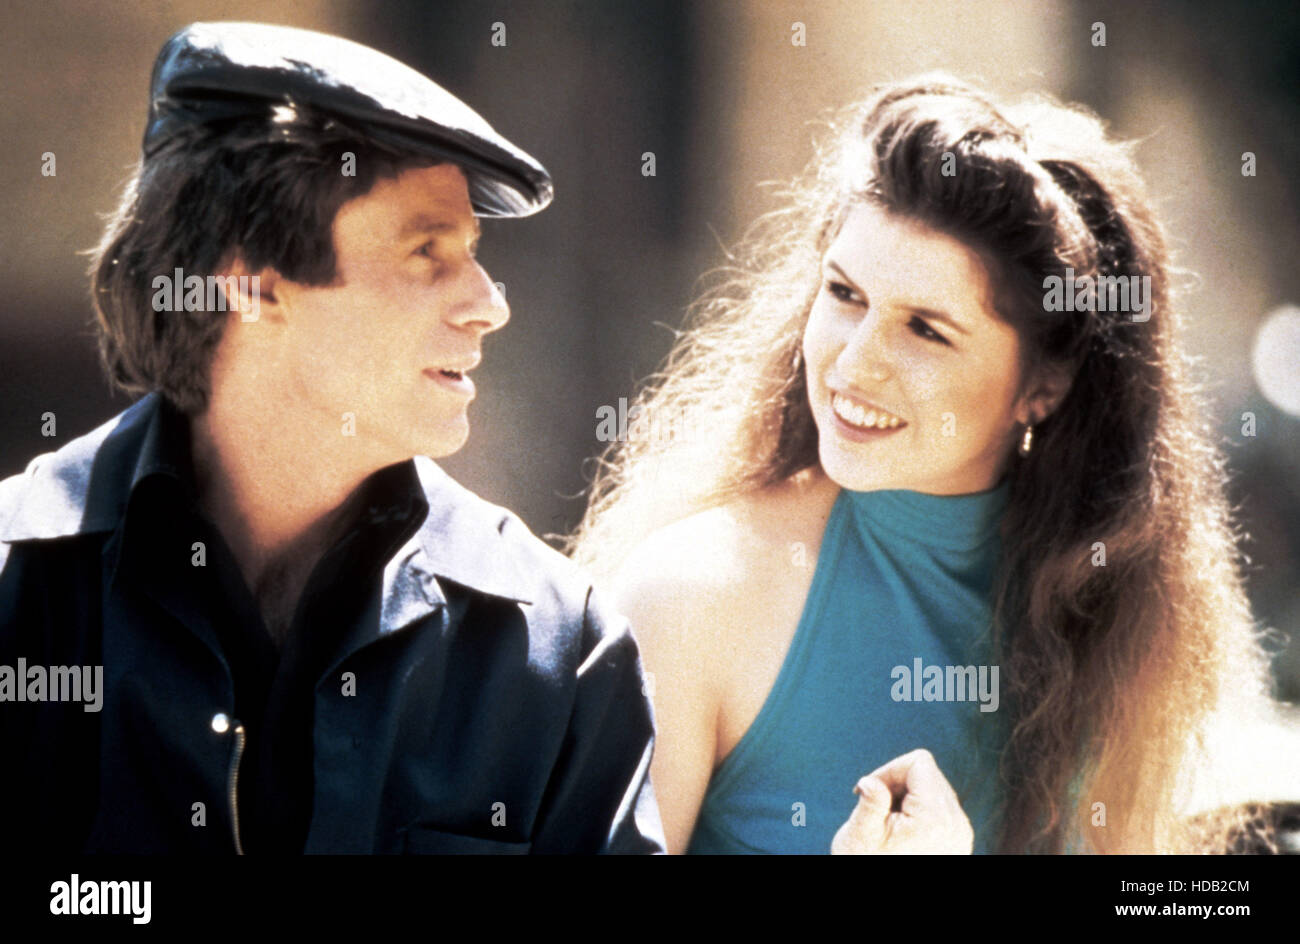 General Hospital From Left Tristan Rogers Finola Hughes Stock Photo Alamy